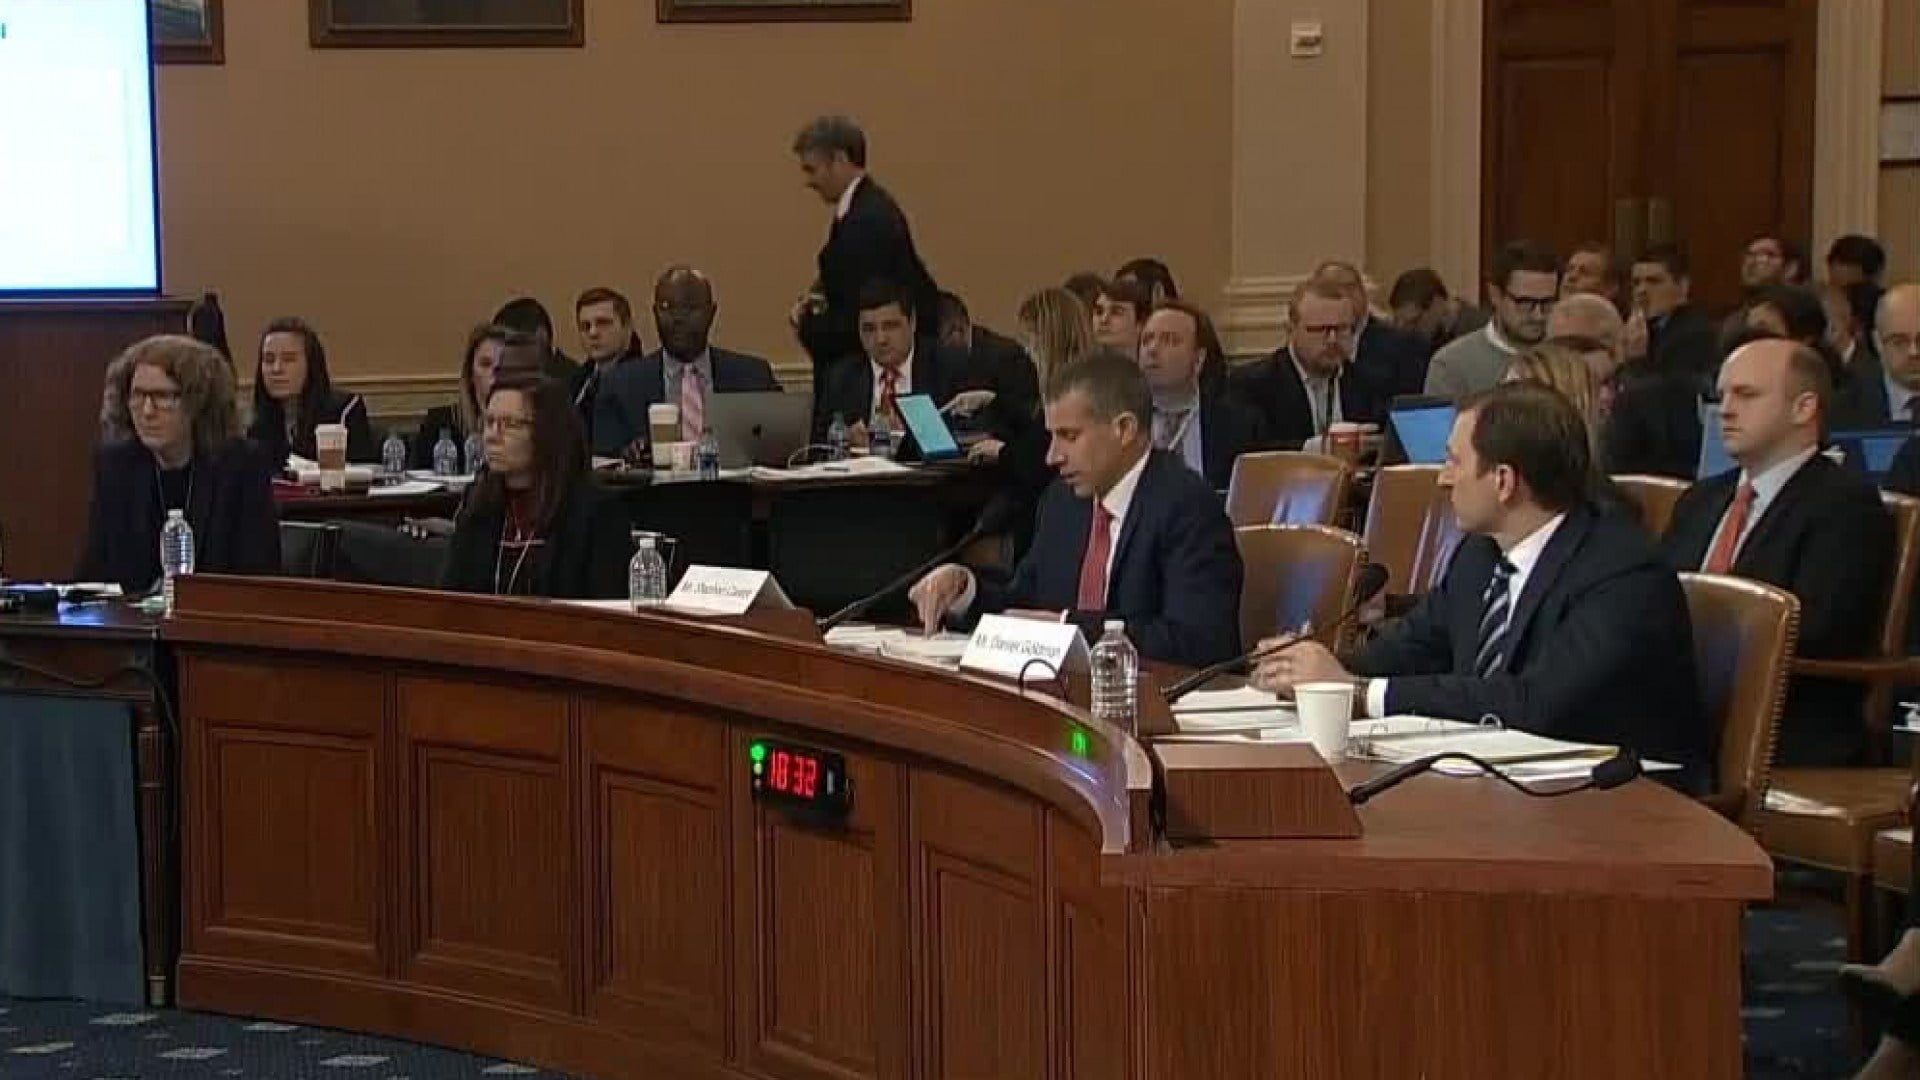 Live Coverage & Analysis: Judiciary Committee Nears Impeachment Vote 1